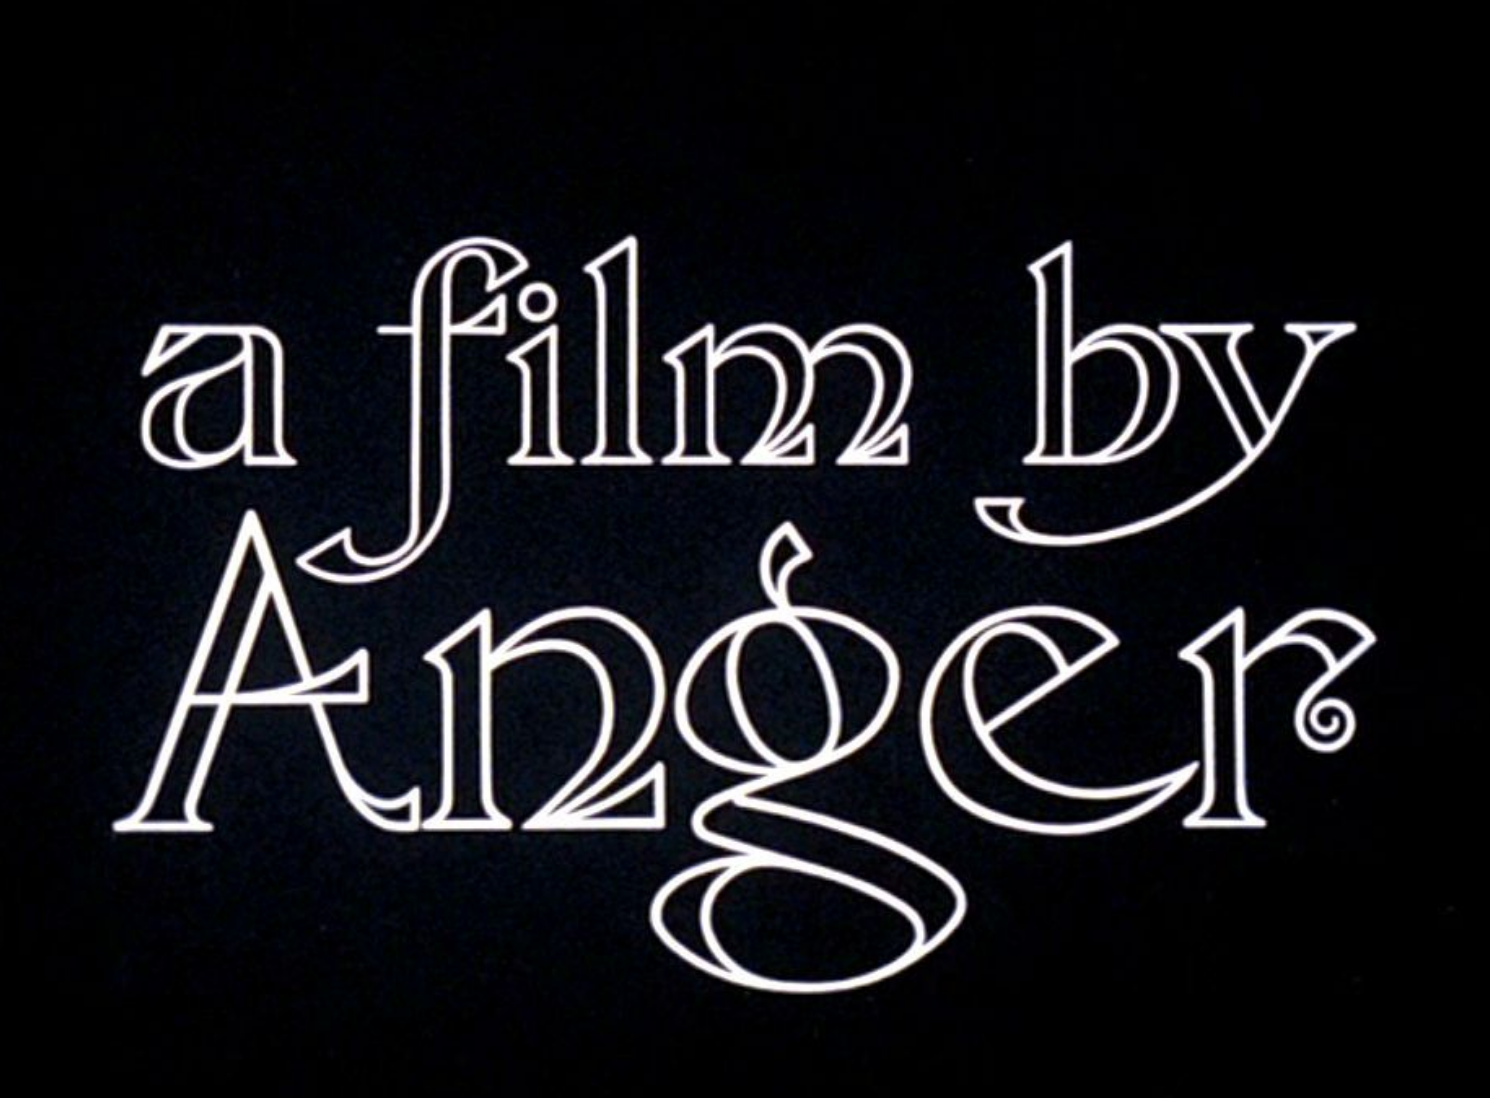 Kenneth Anger's Rabbit's Moon font from 1972 - Font Identification